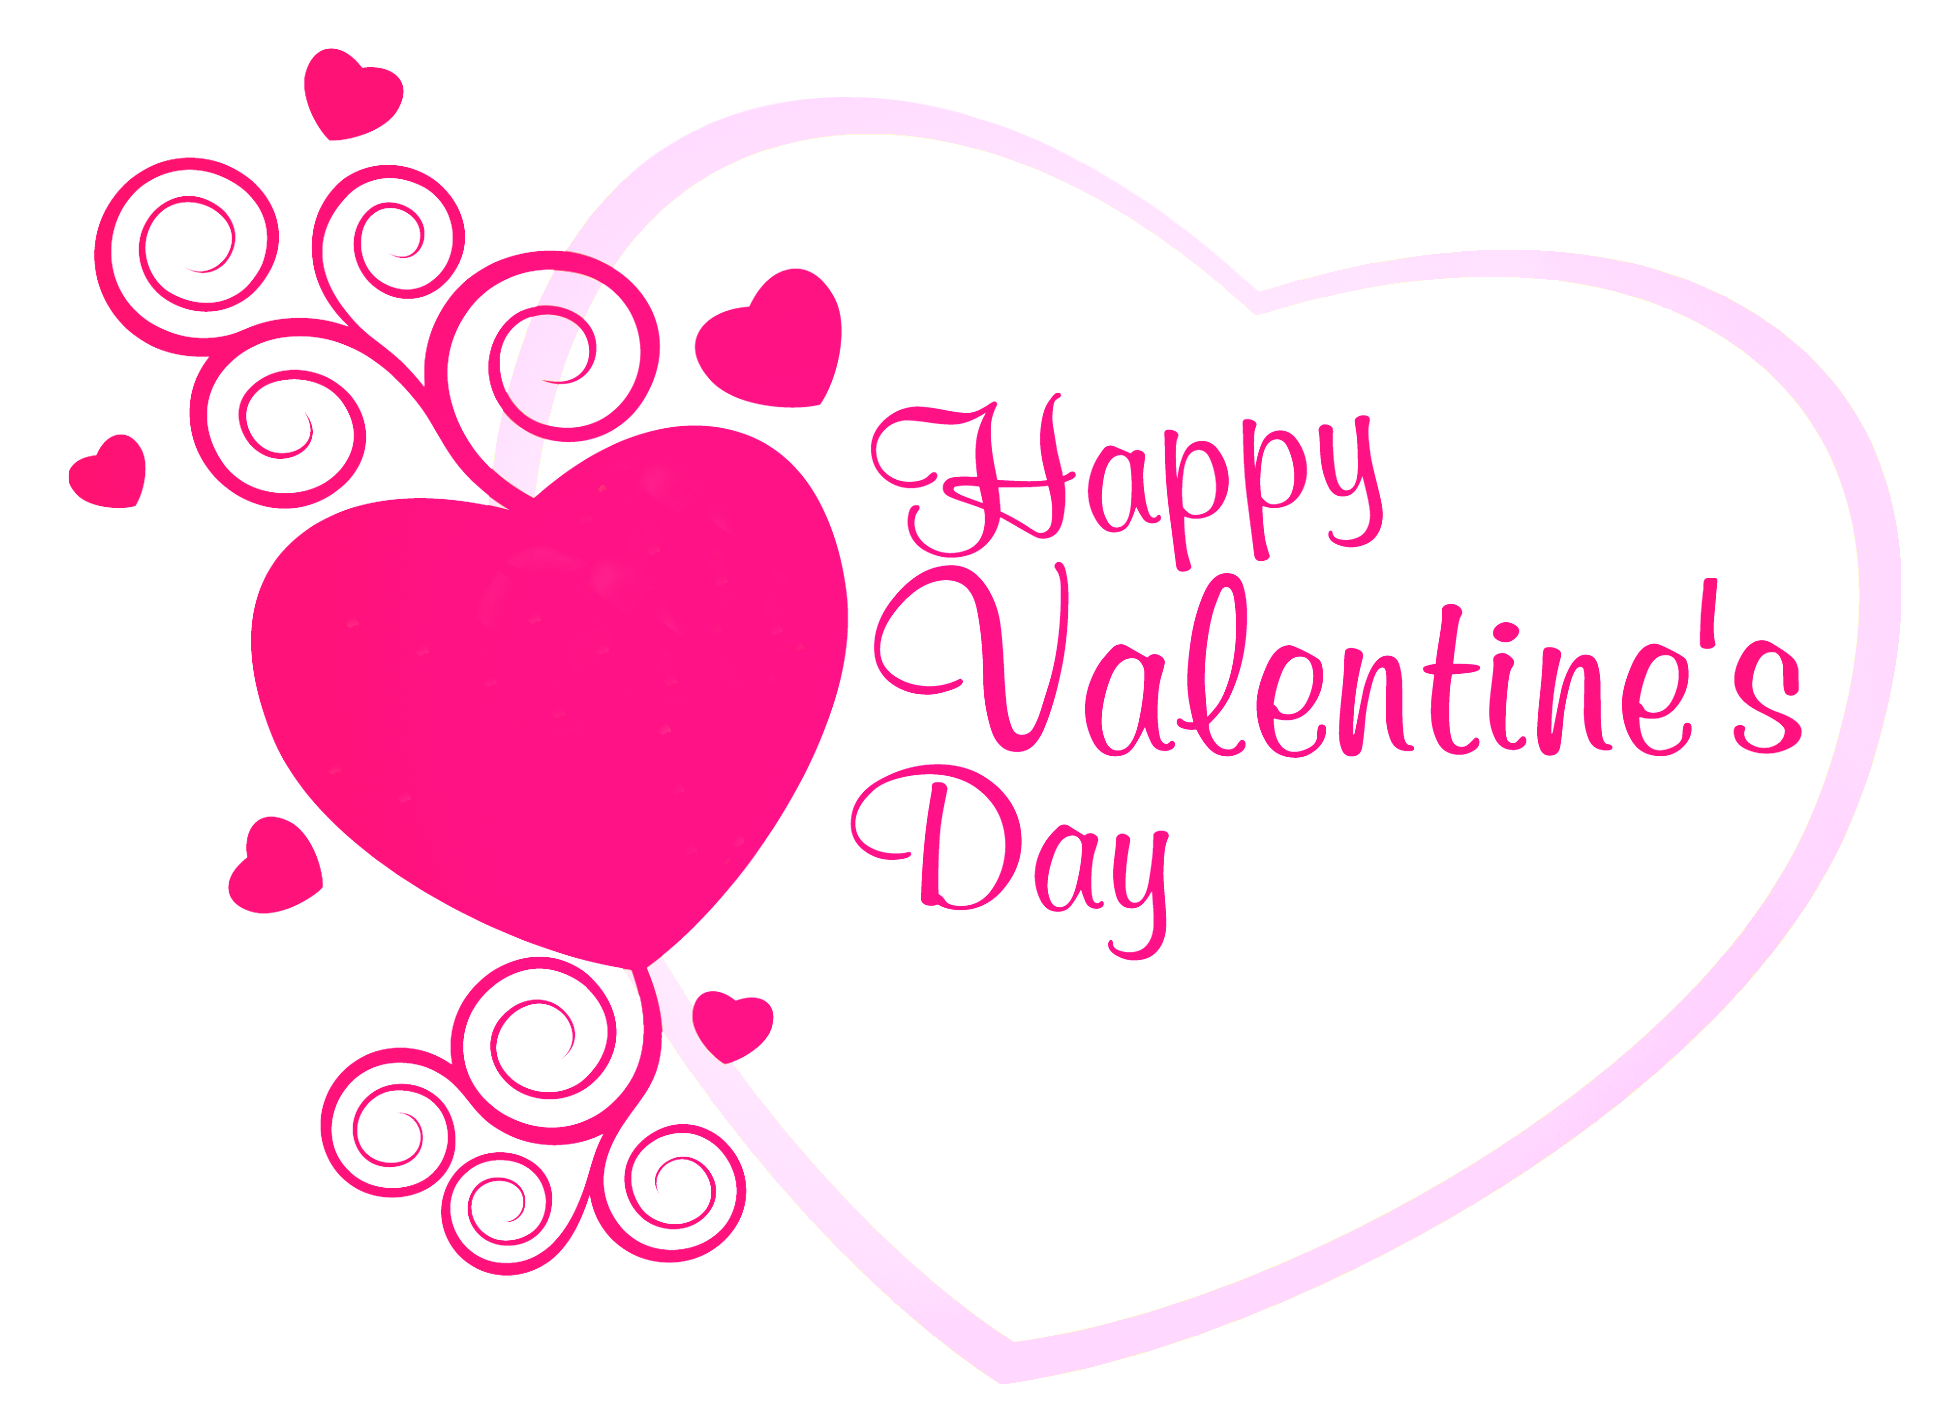 Valentines Day Clipart Images-Valentines Day Clipart Images-14